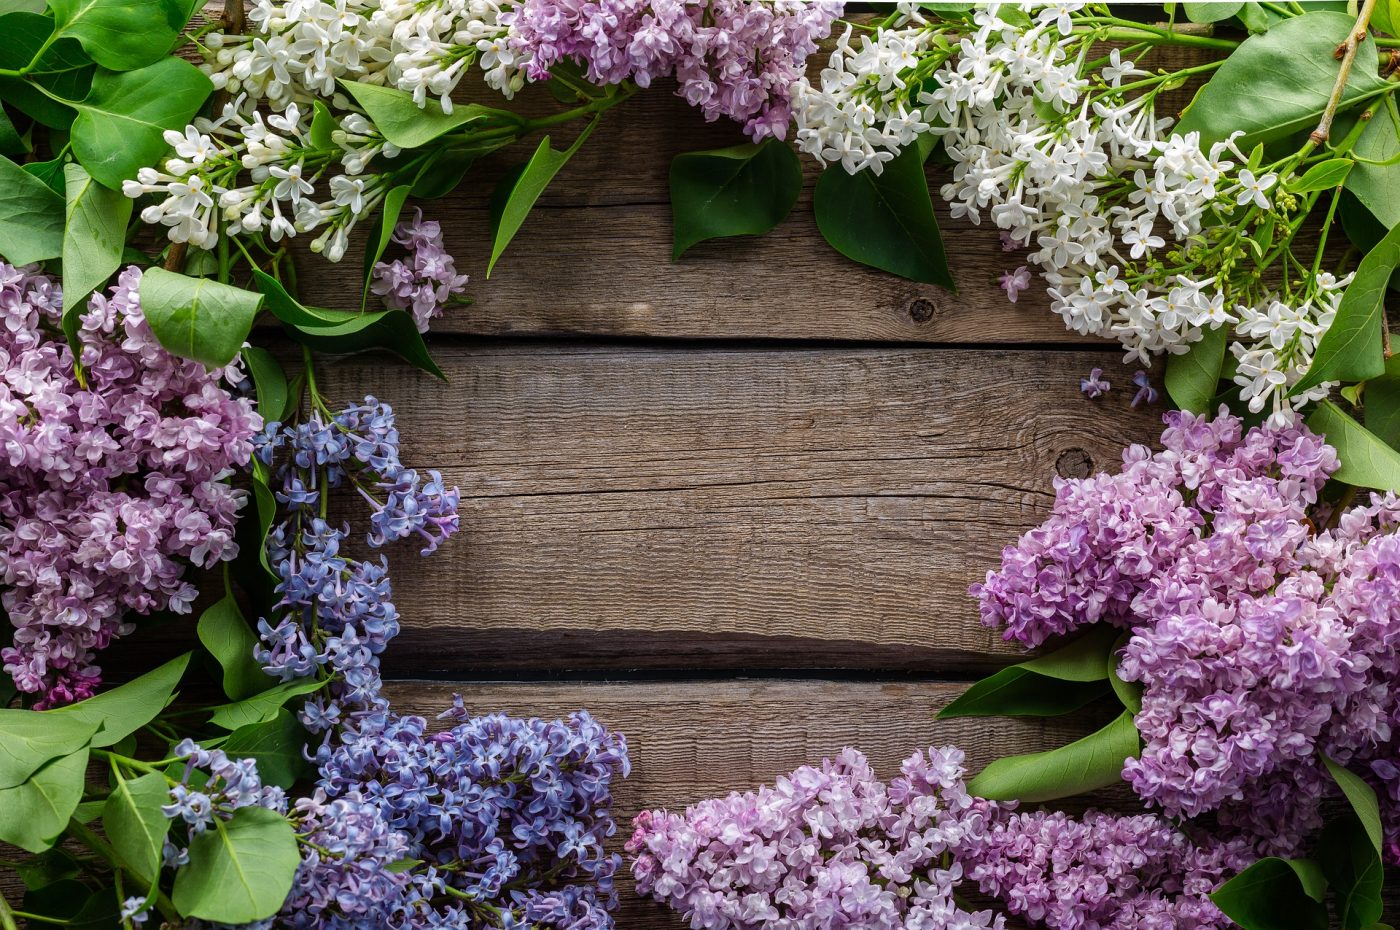 spring background-1914126_1920